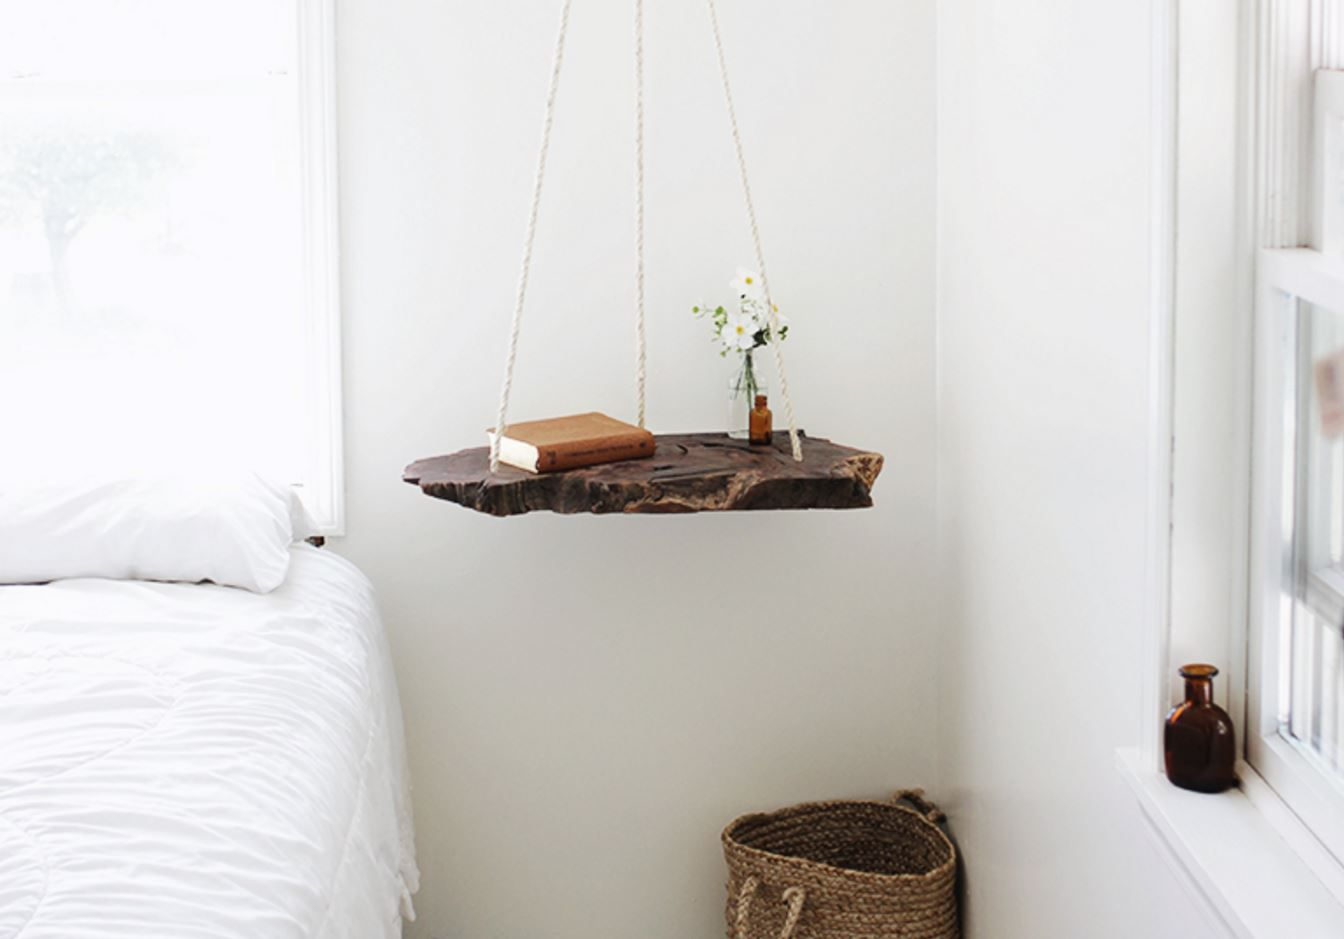 diy live edge wood projects for your home hanging table accent small oak bedside outdoor mats and steel side pier one tables living room kitchen lamp round concrete farmhouse